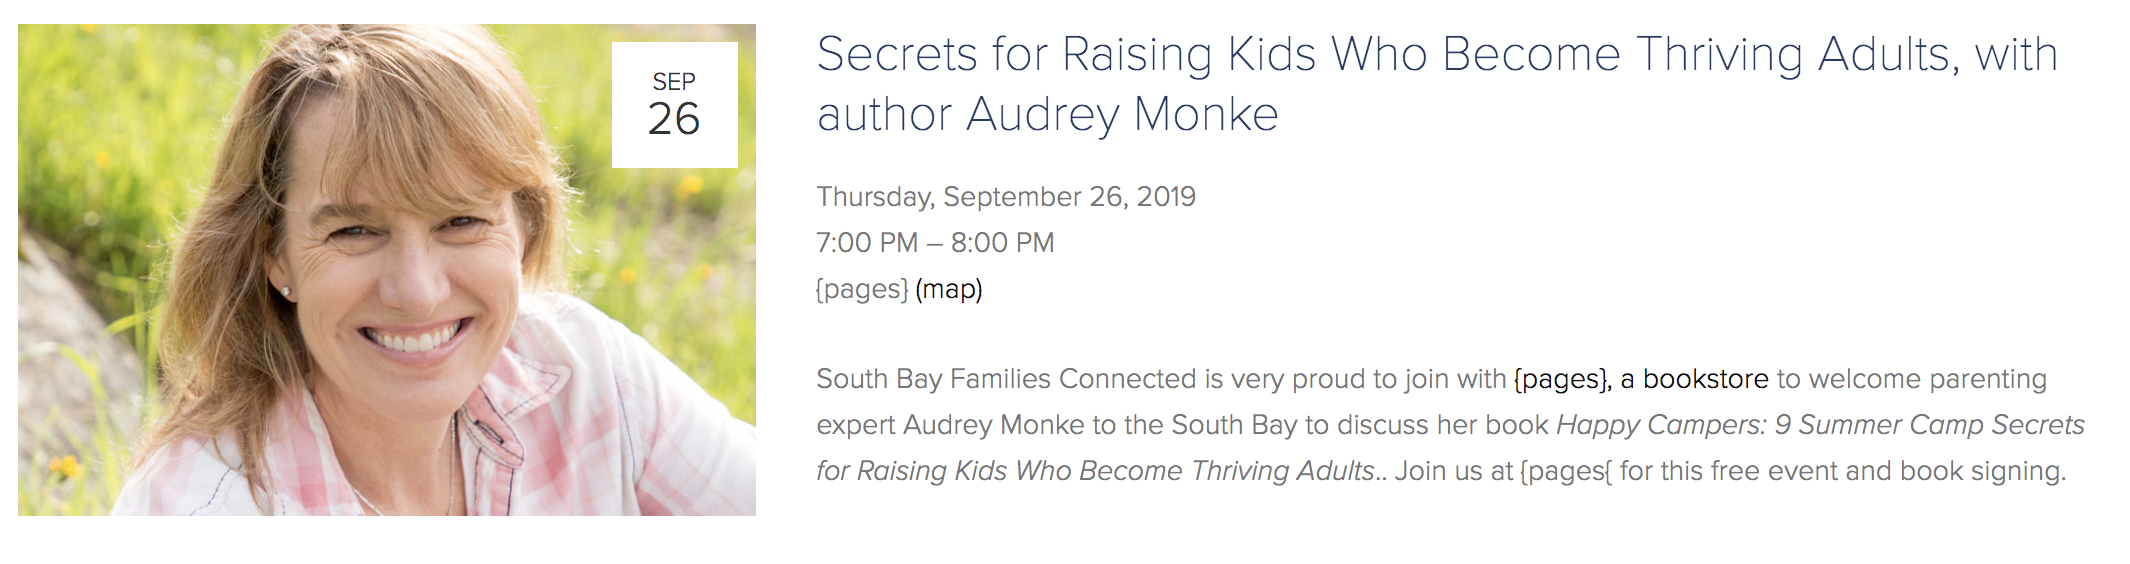 Click on image for upcoming event with Audrey